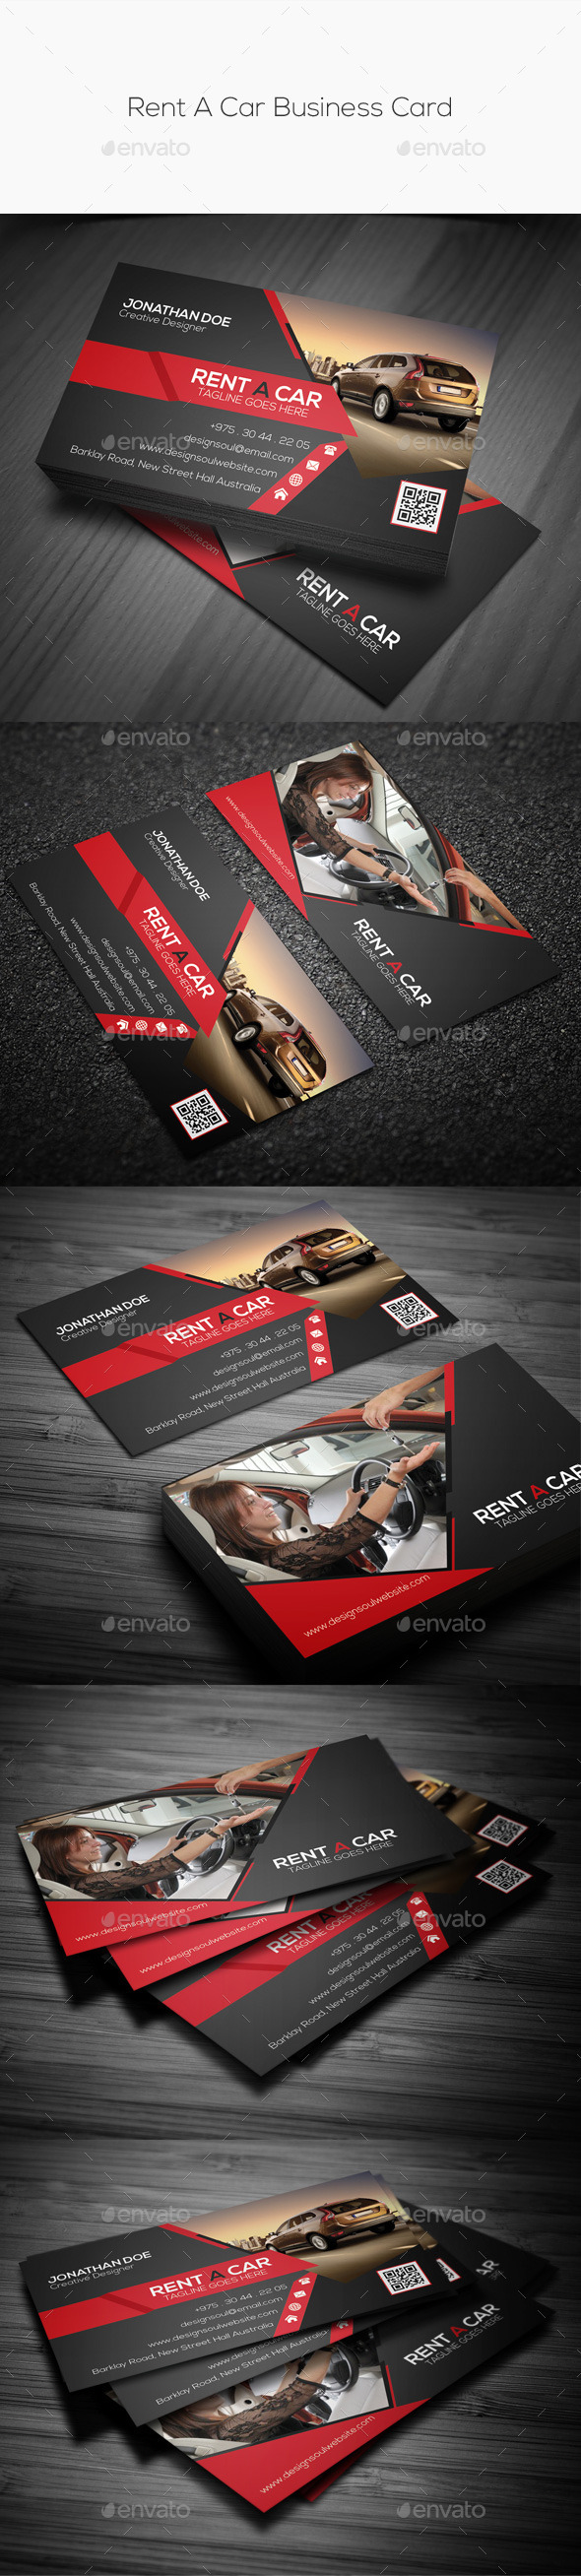 Rent A Car Business Card by designsoul14 | GraphicRiver